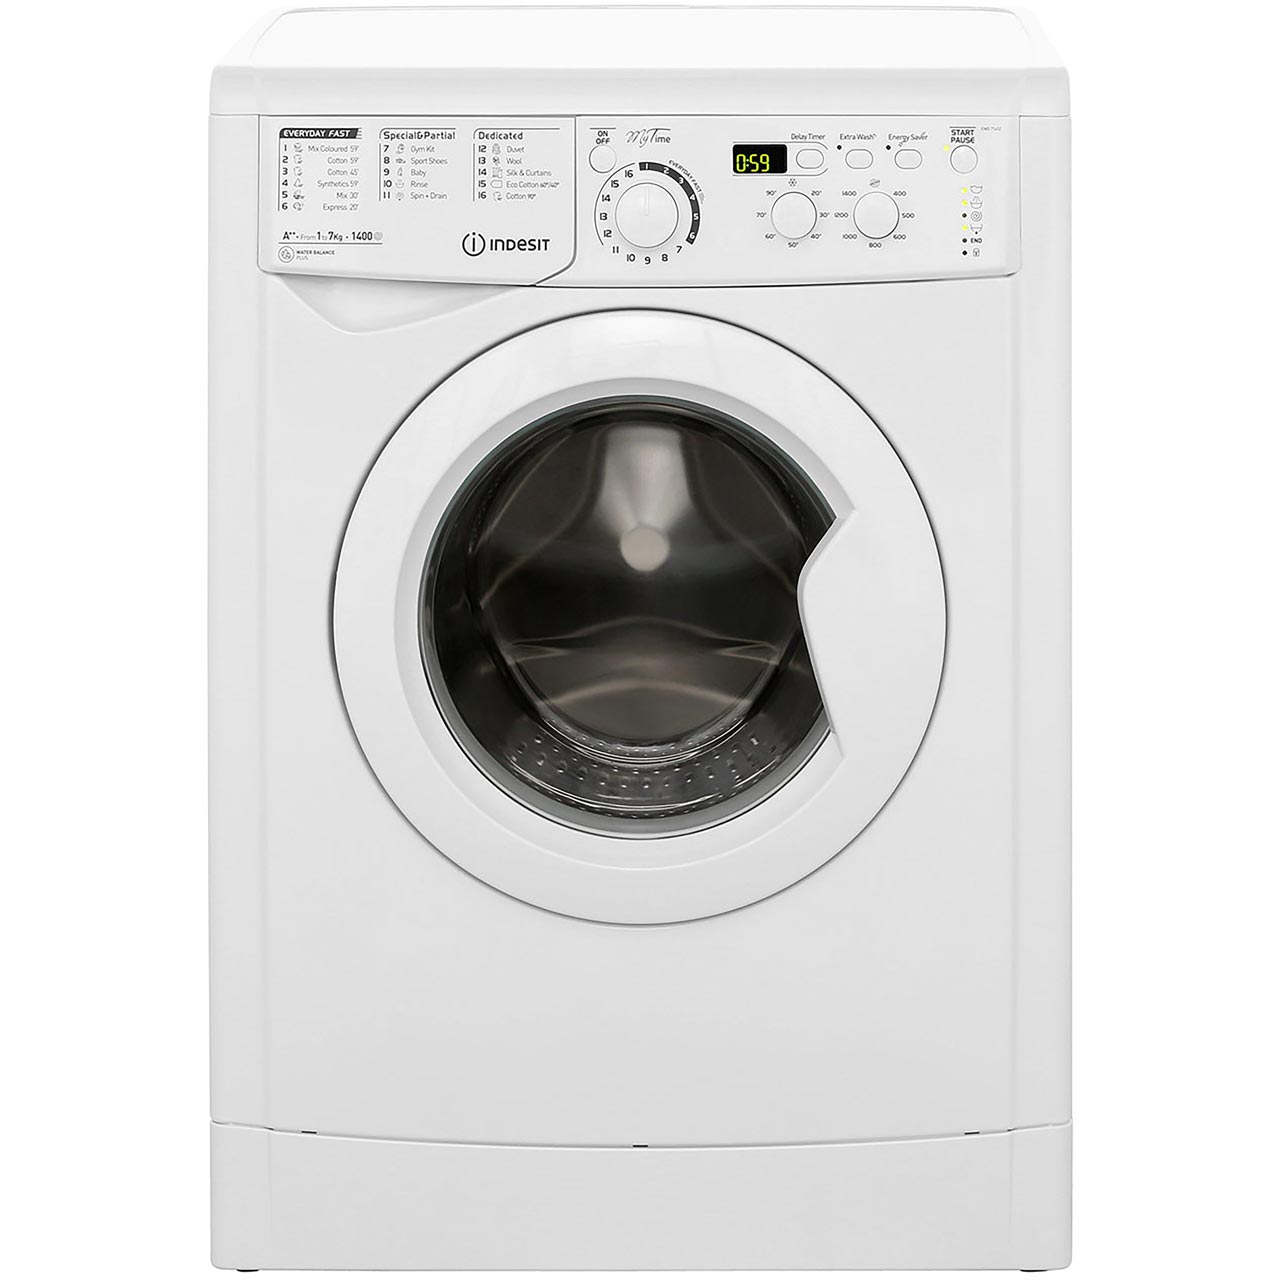 Boots Kitchen Appliances Washing Machines Fridges Amp More